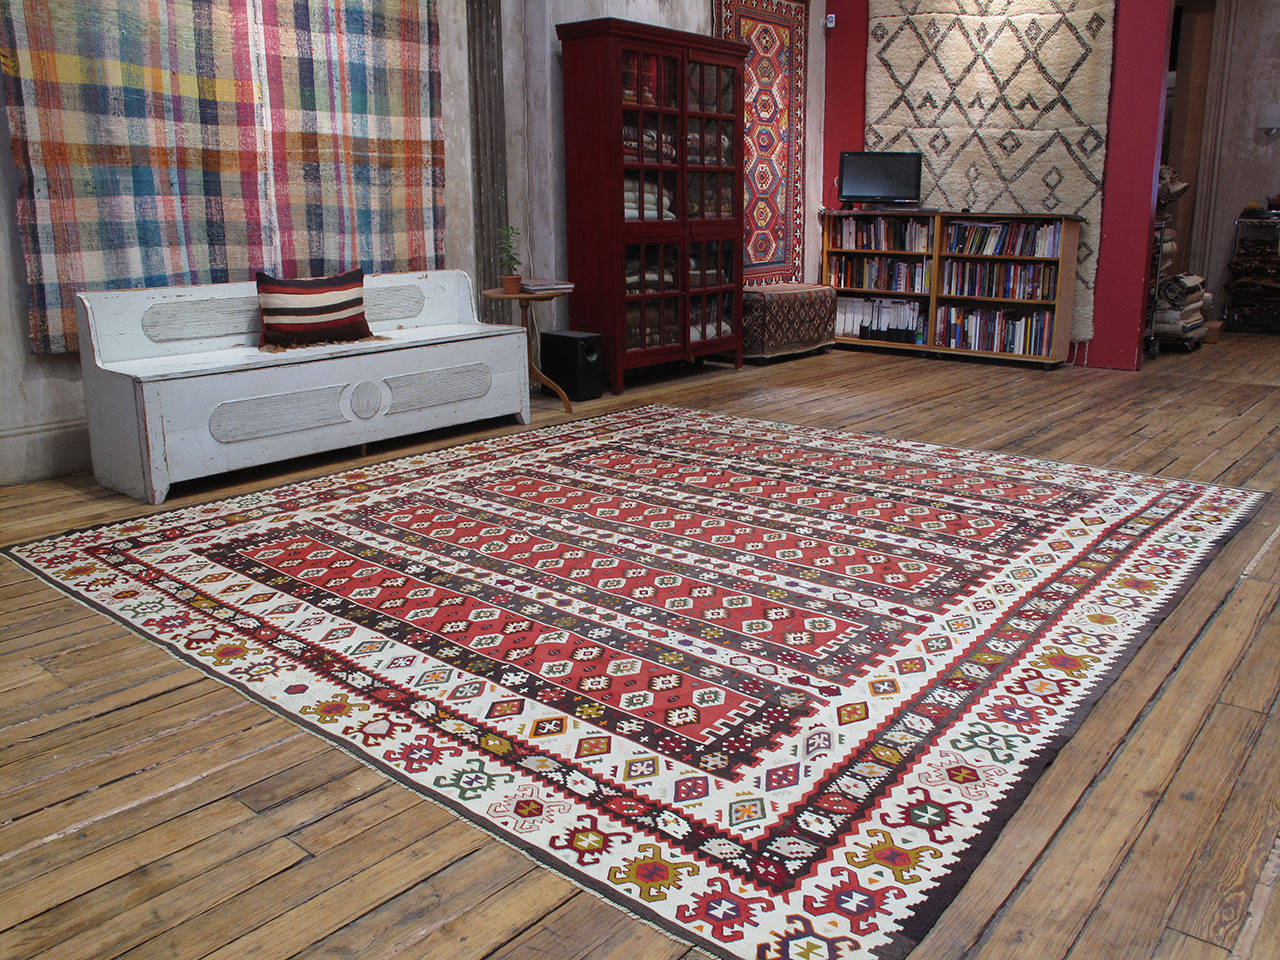 Balkan Kilim rug. An old flat-woven rug in large, square-ish format from the border region between Serbia and Bulgaria, where the tradition of weaving large Kilims goes back for centuries. This rug is a high quality example featuring a well-known